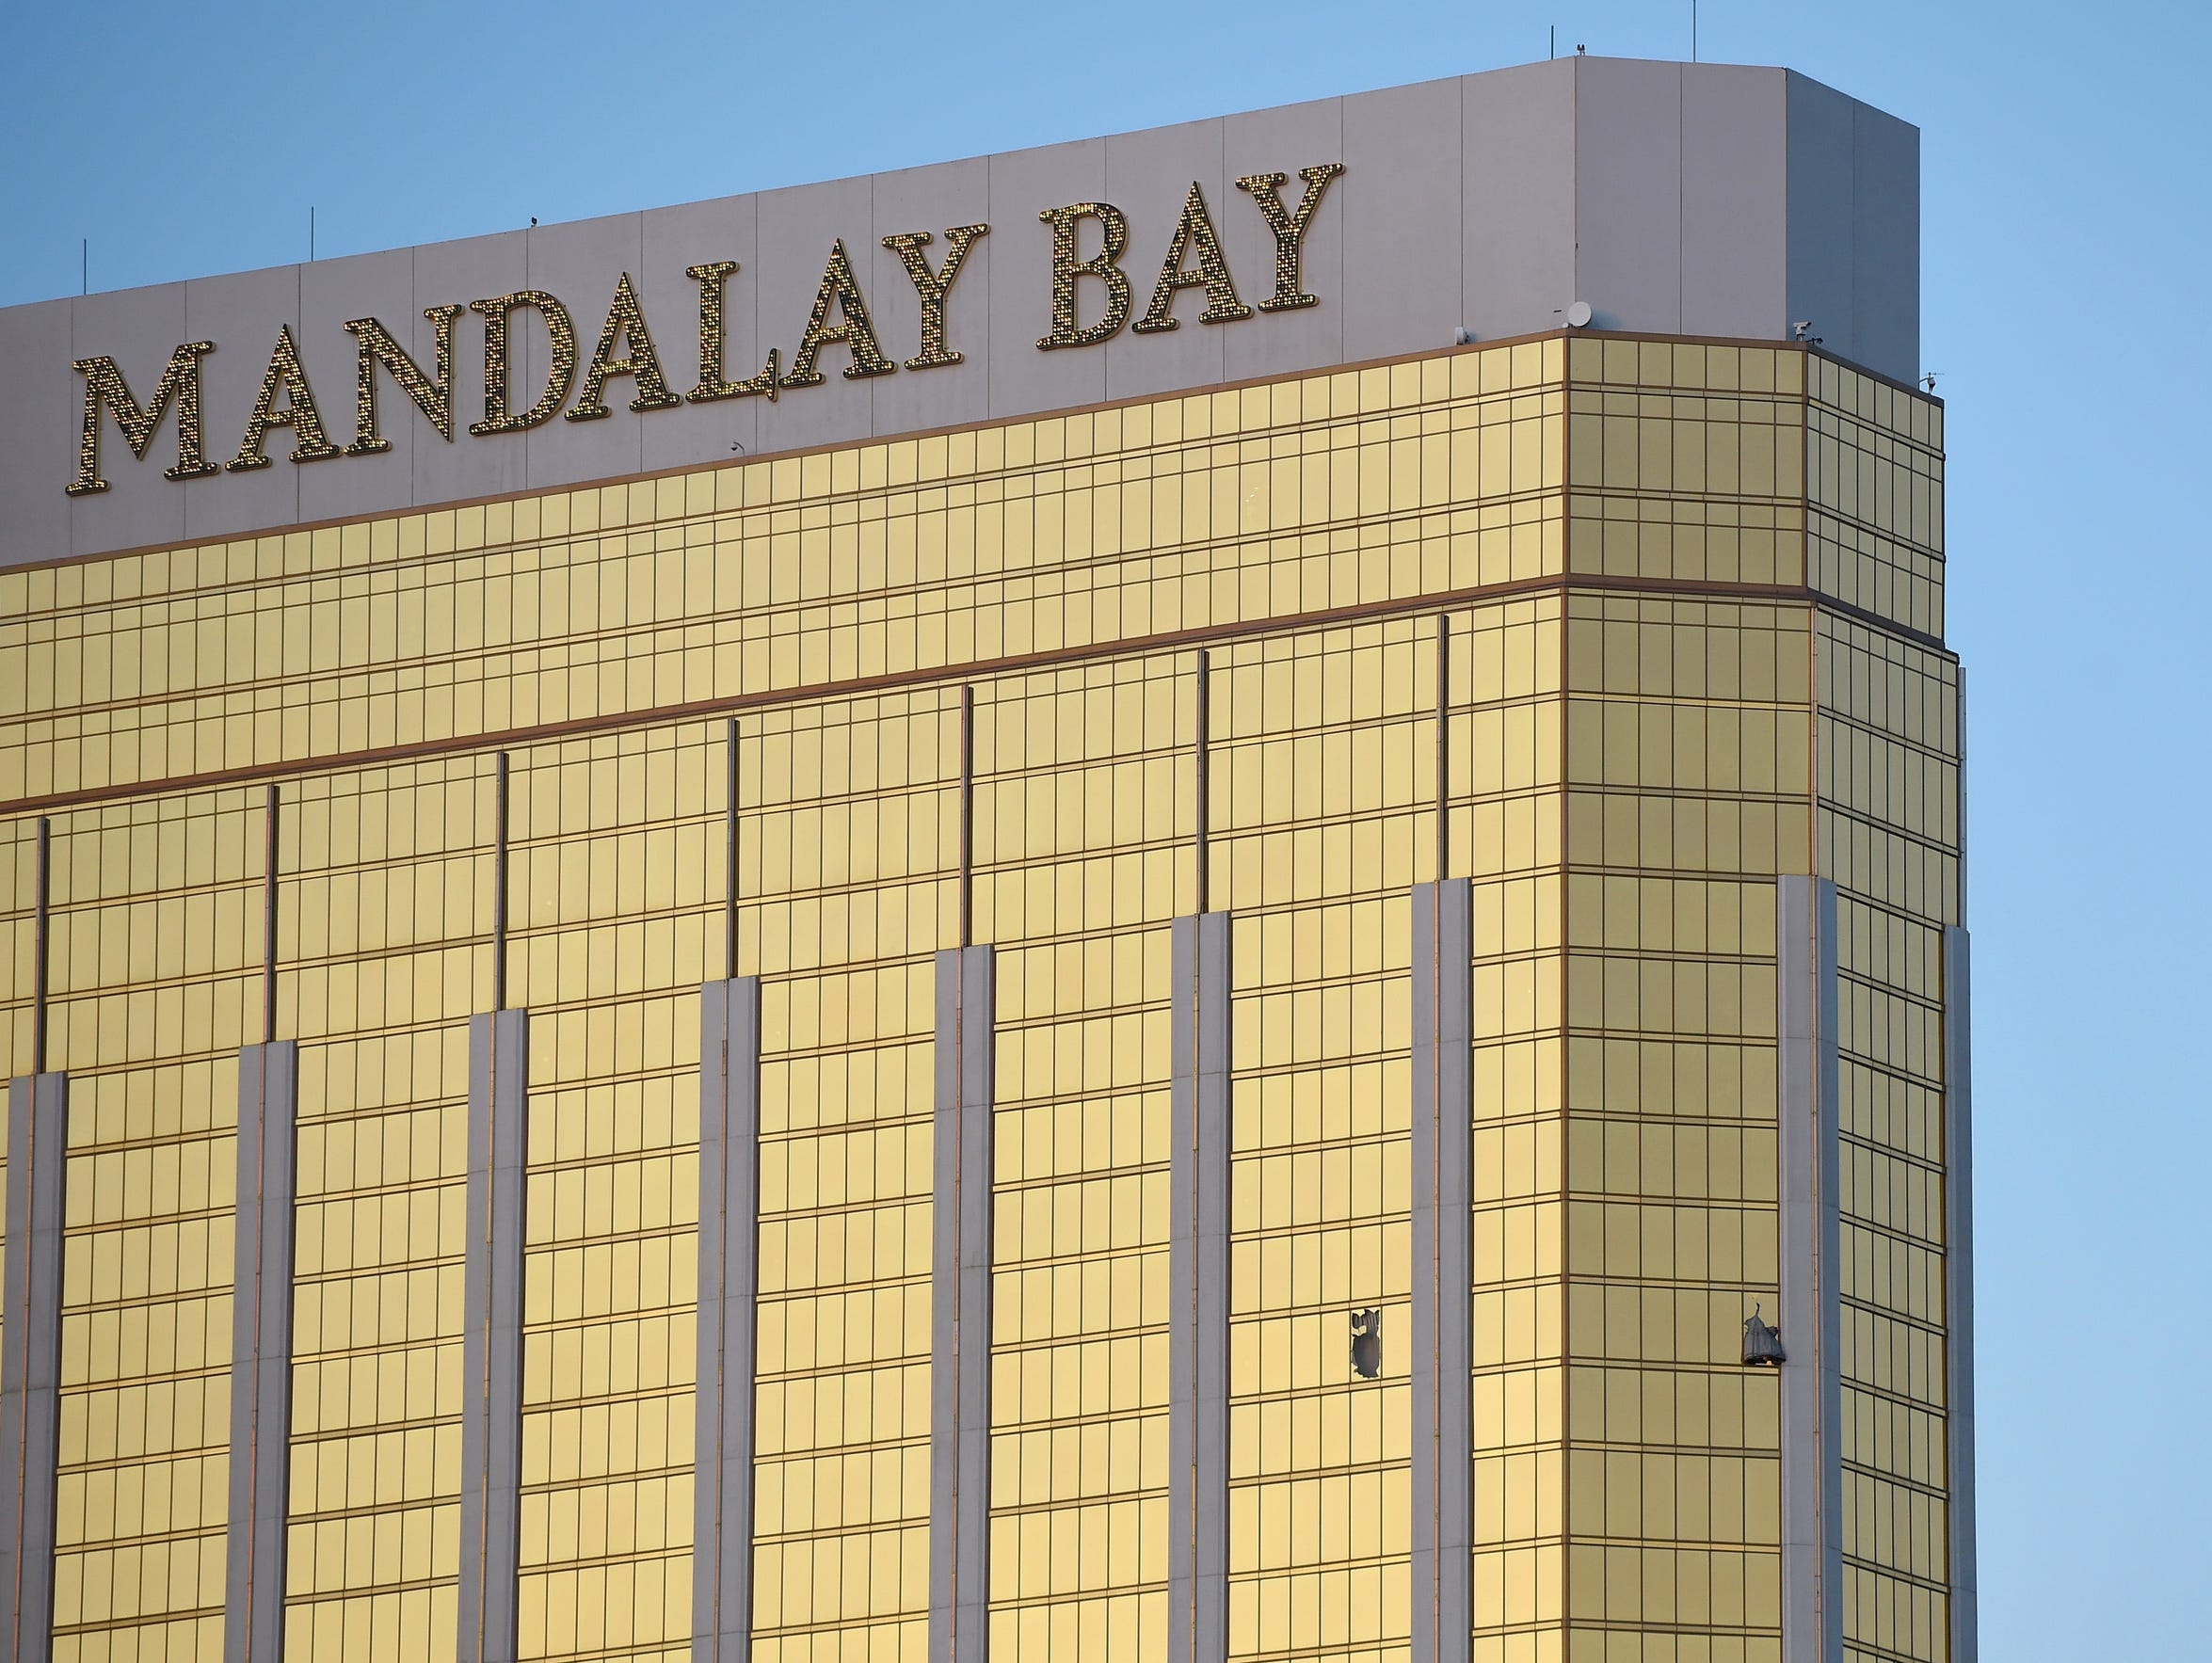 Broken windows are seen on the 32nd floor of the Mandalay